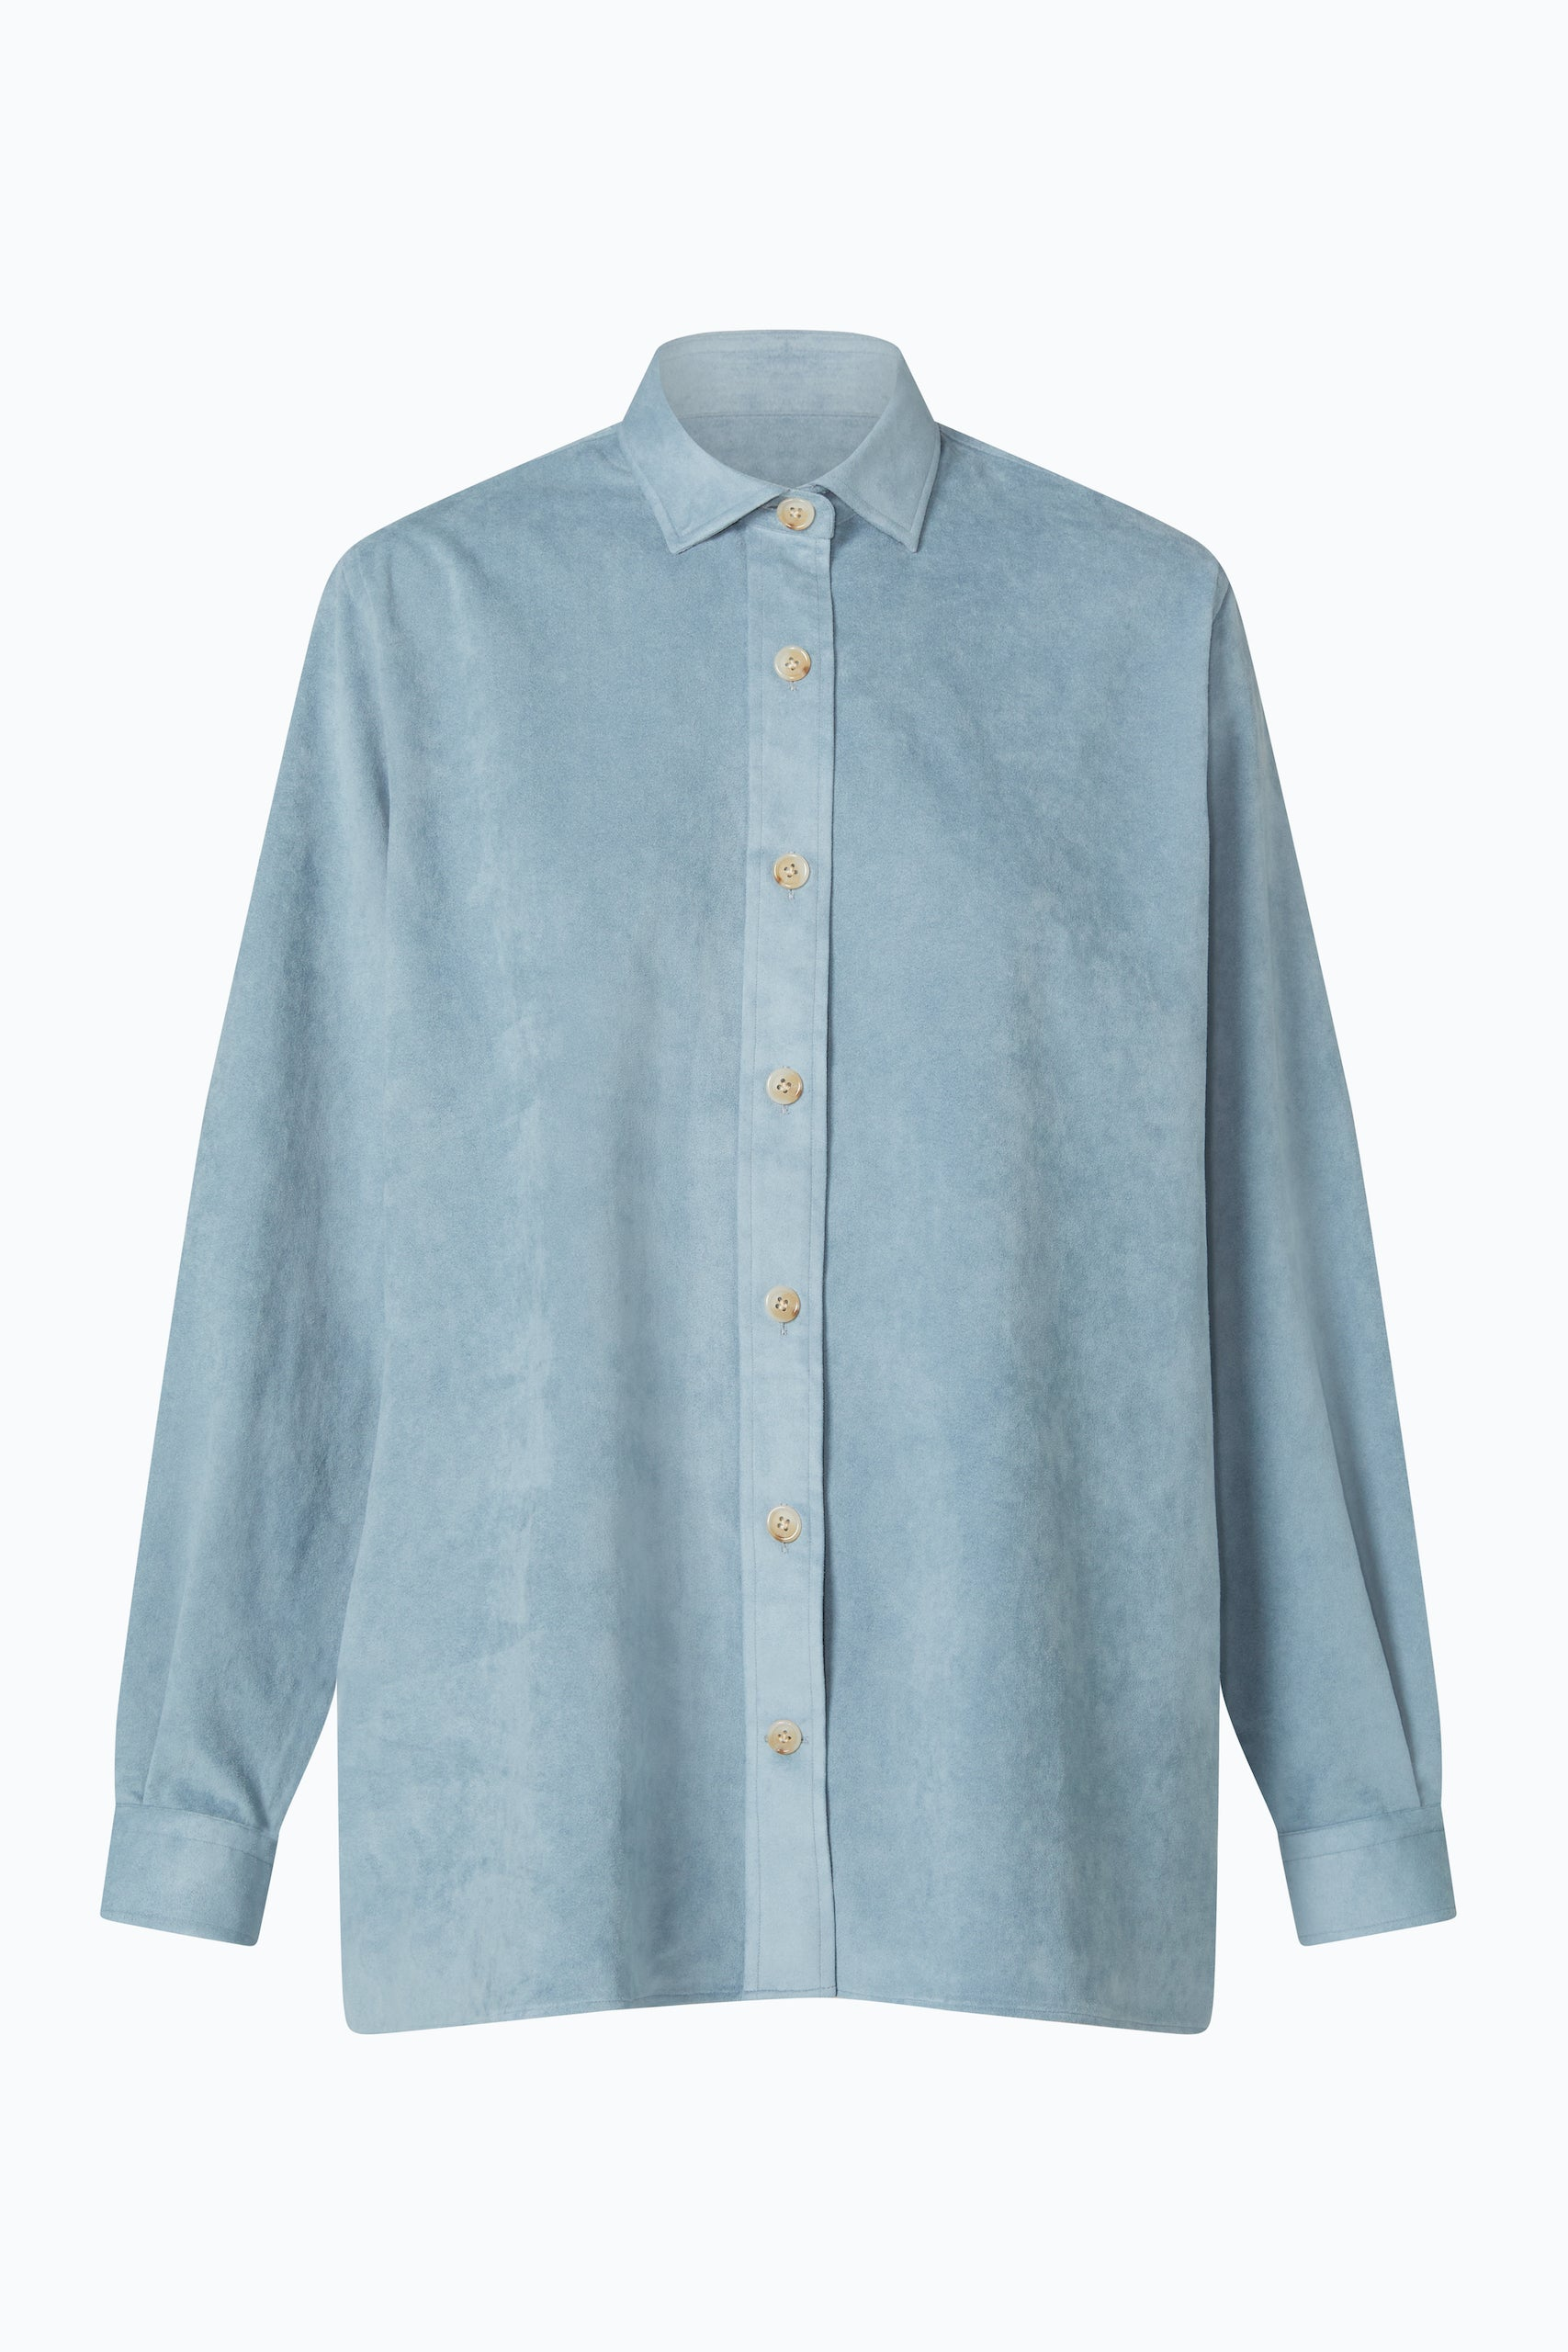 "Mid Blue ""Vegan Suede"" Over Shirt"